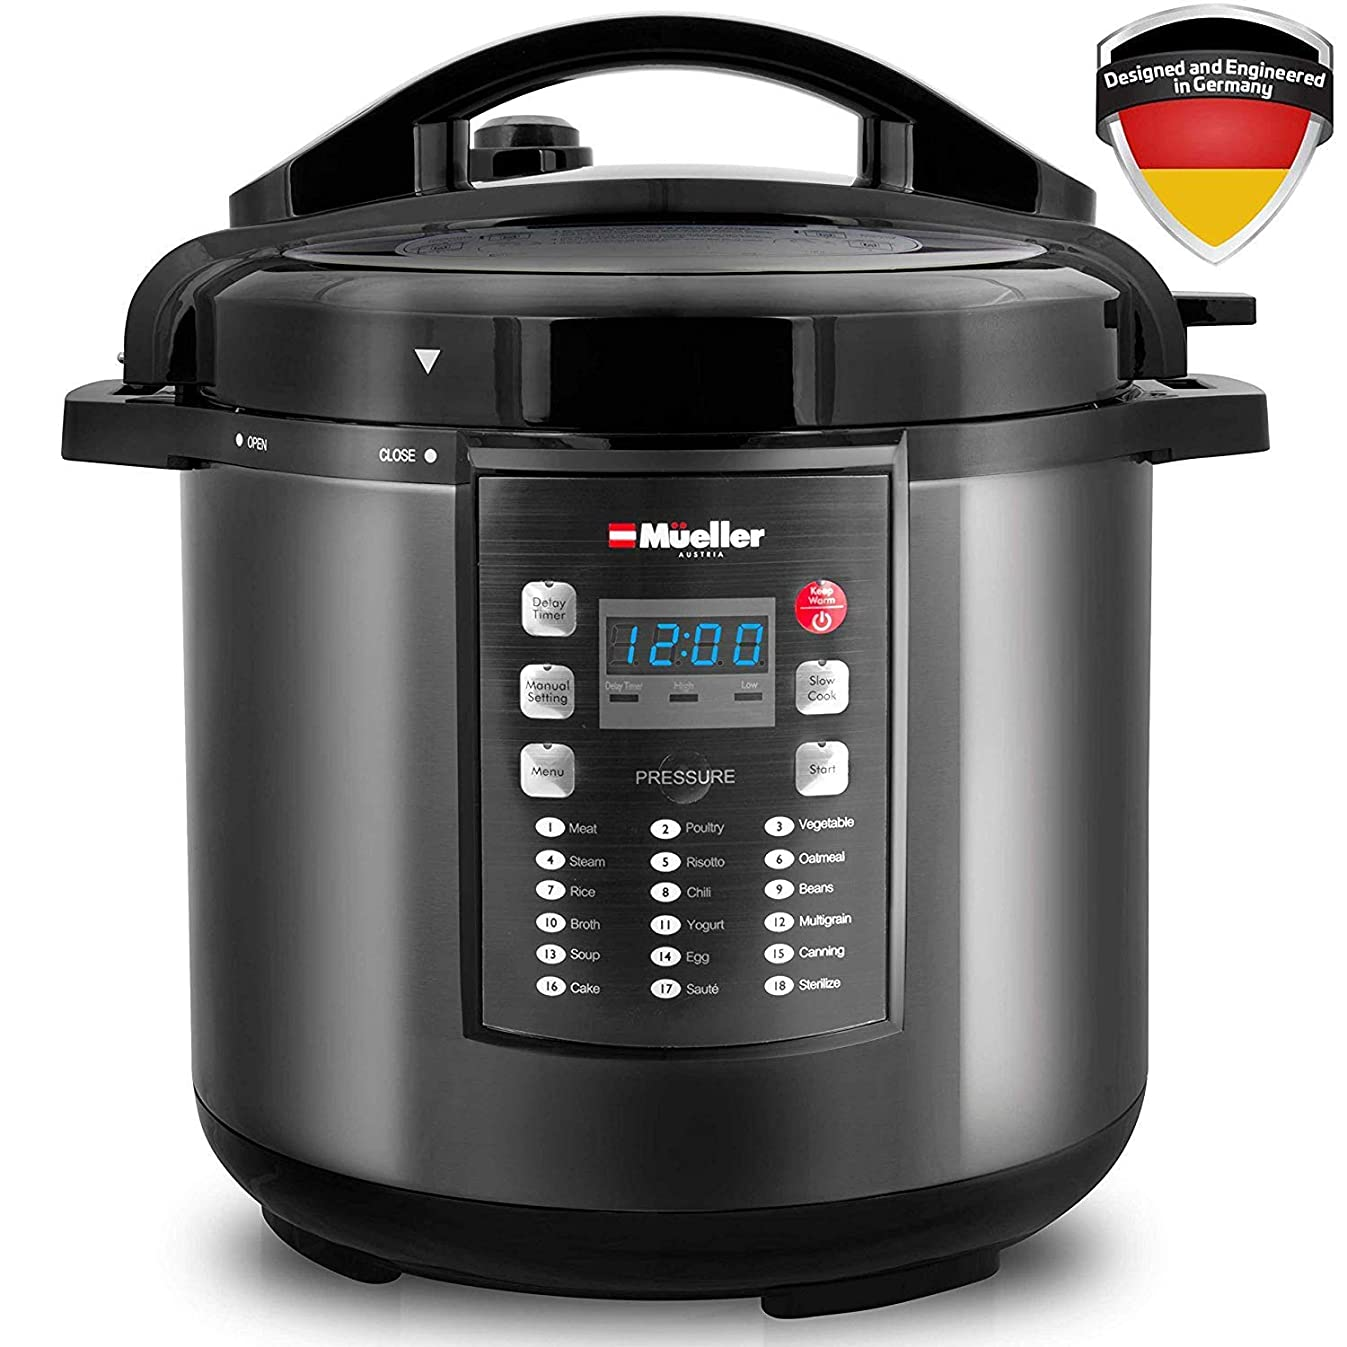 Pressure Cooker Instant Crock 10-in-1 Pot Pro Series 19 Program 6Q with German ThermaV Tech, Cook 2 Dishes at Once, BONUS TEMPERED GLASS LID, Saute, Steamer, Slow, Rice, Yogurt, Sterilizer